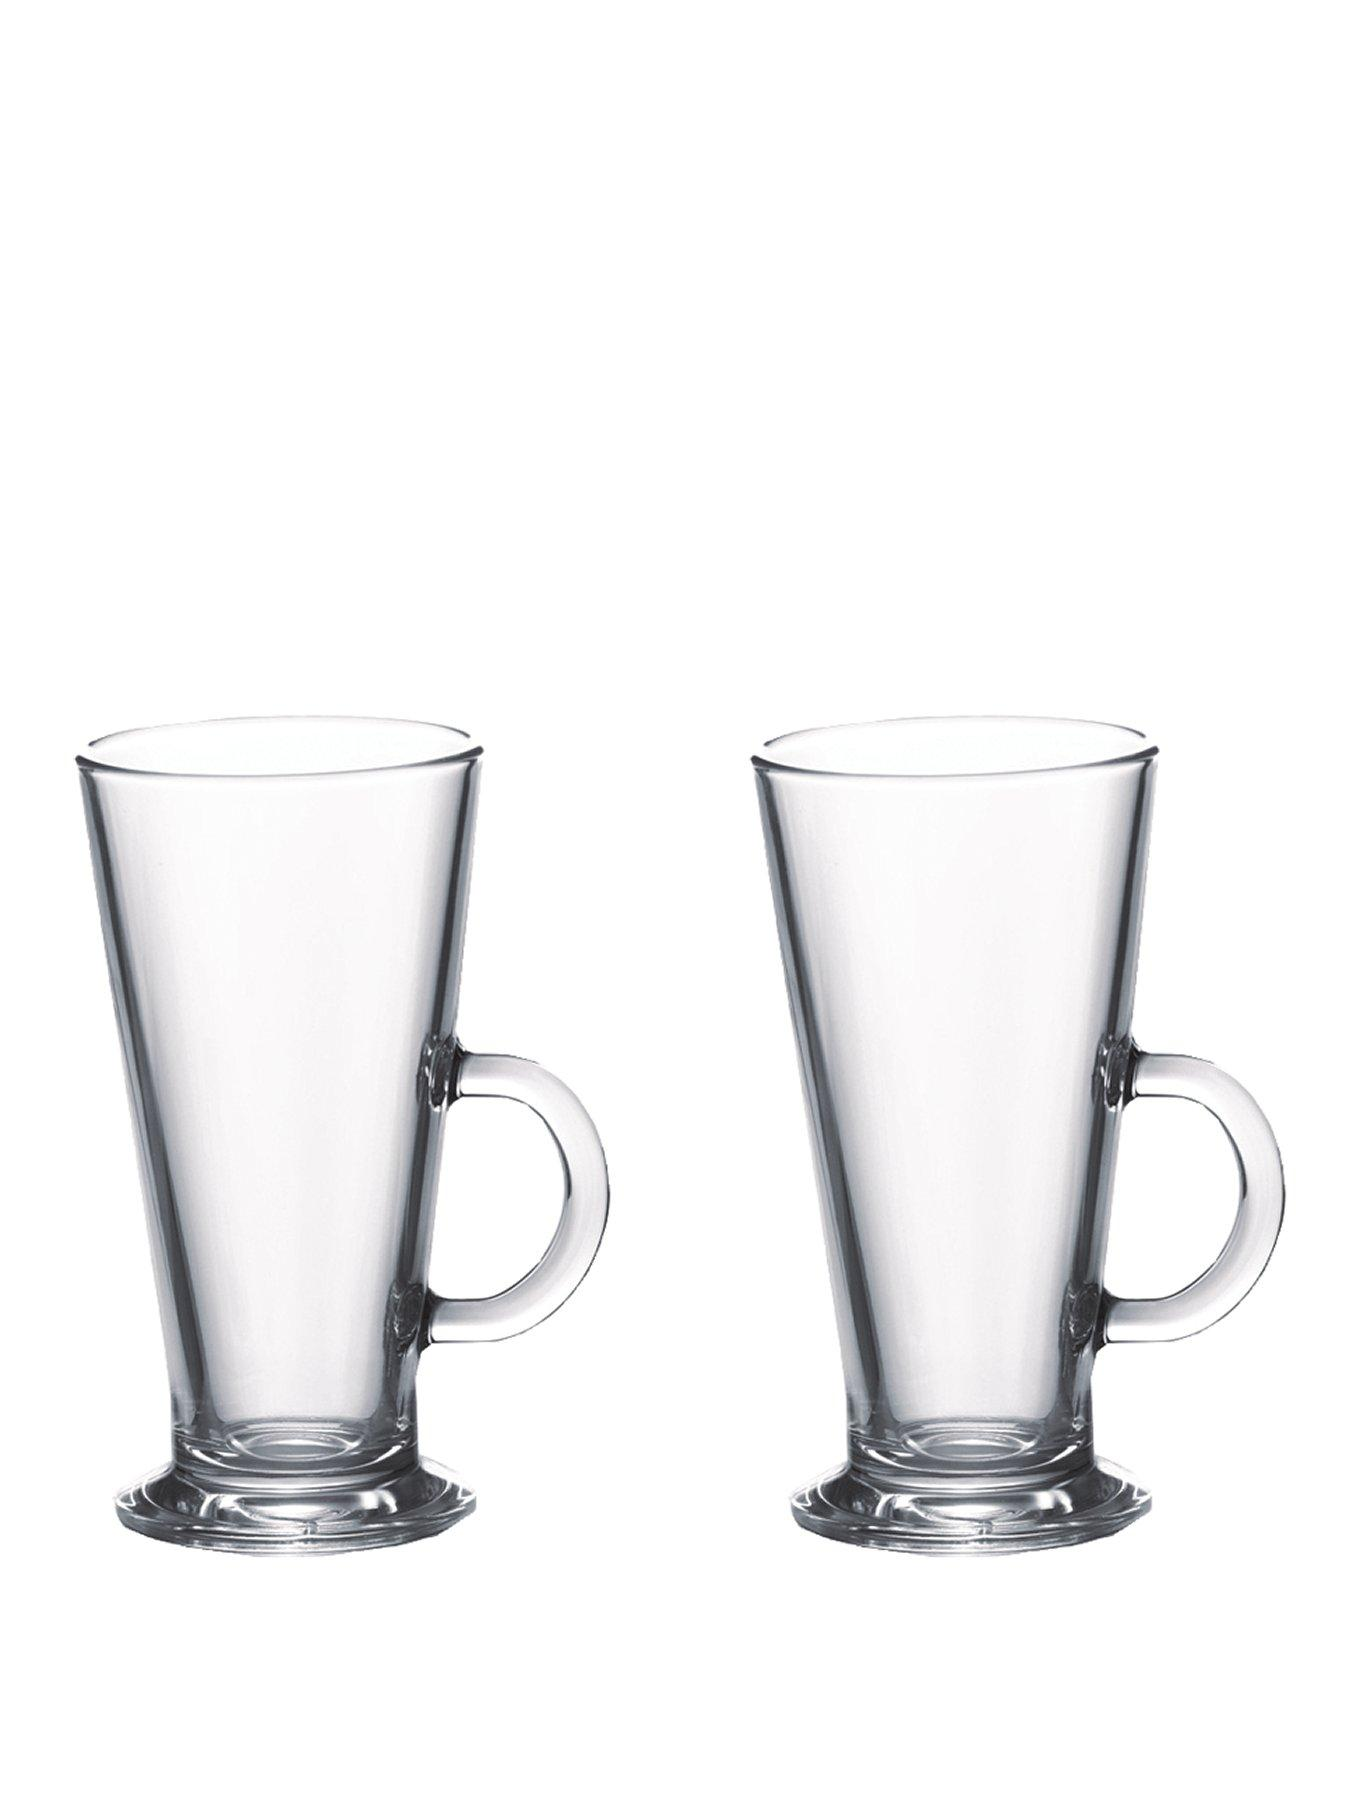 Entertain Latte Glasses